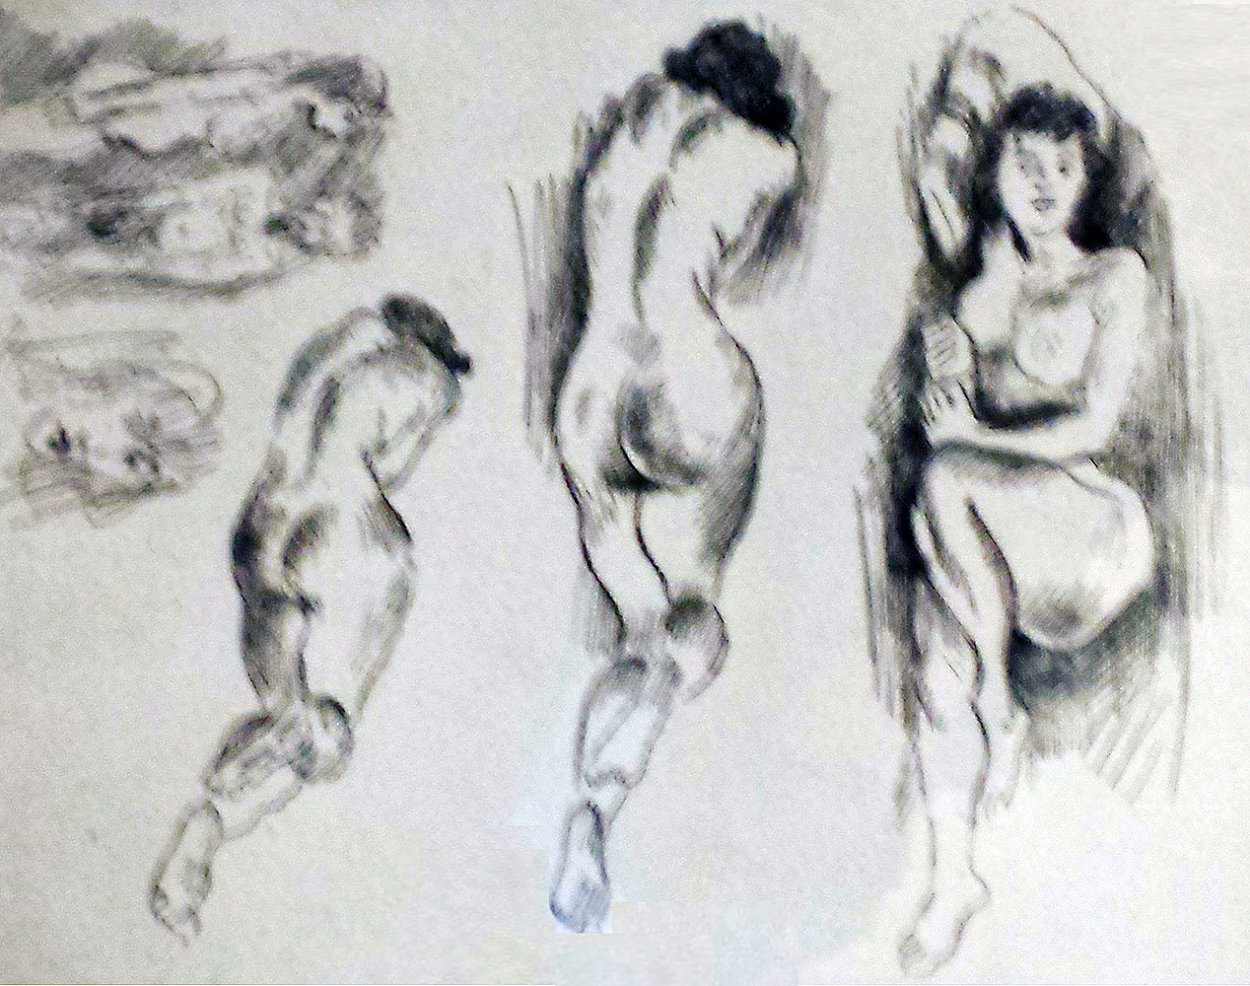 Nudes AP 1950 Limited Edition Print by Raphael Soyer